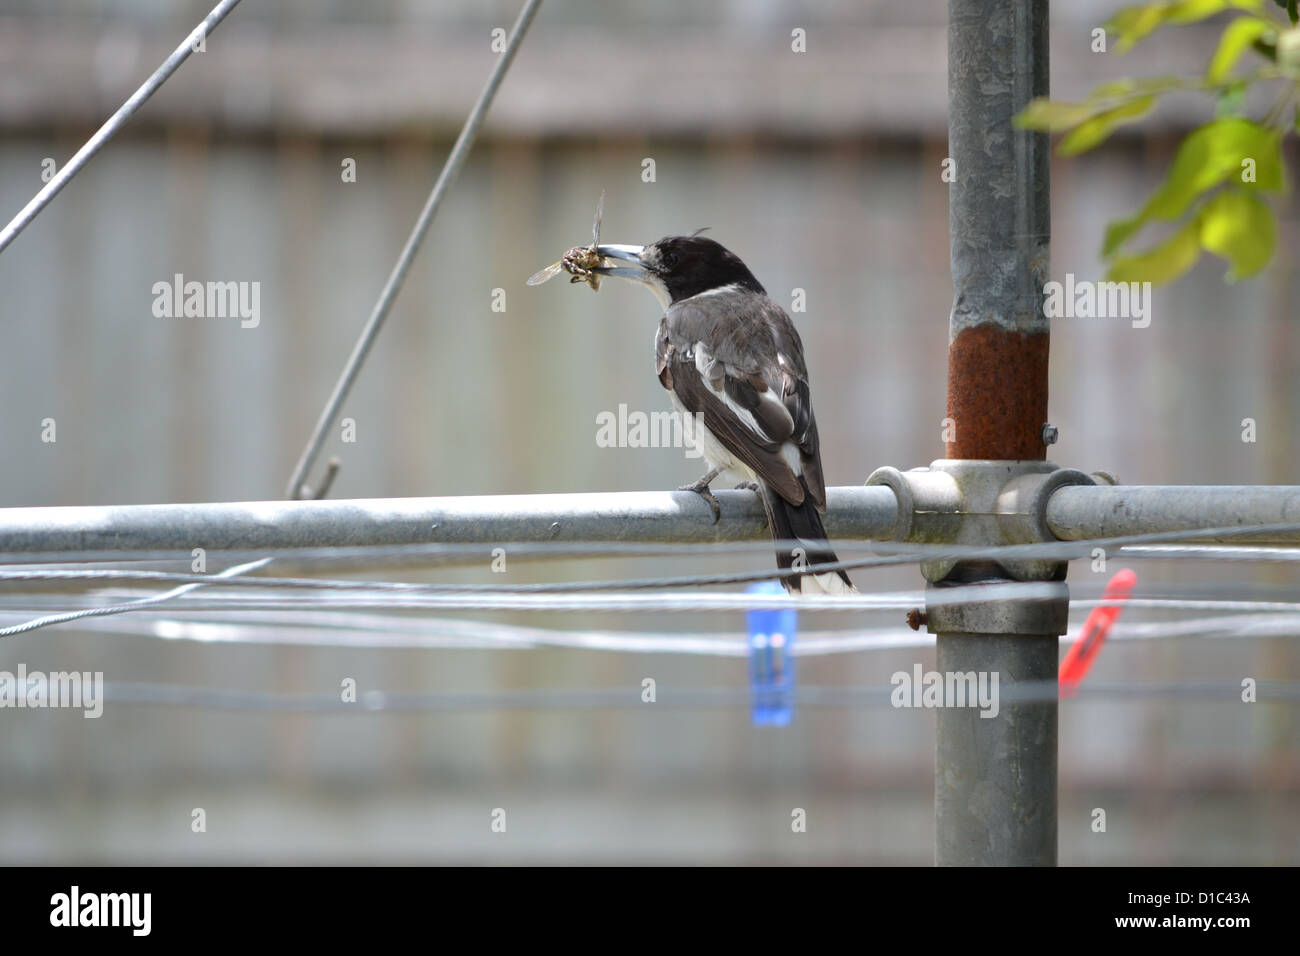 butcher bird on clothesline with insect in its beak - Stock Image